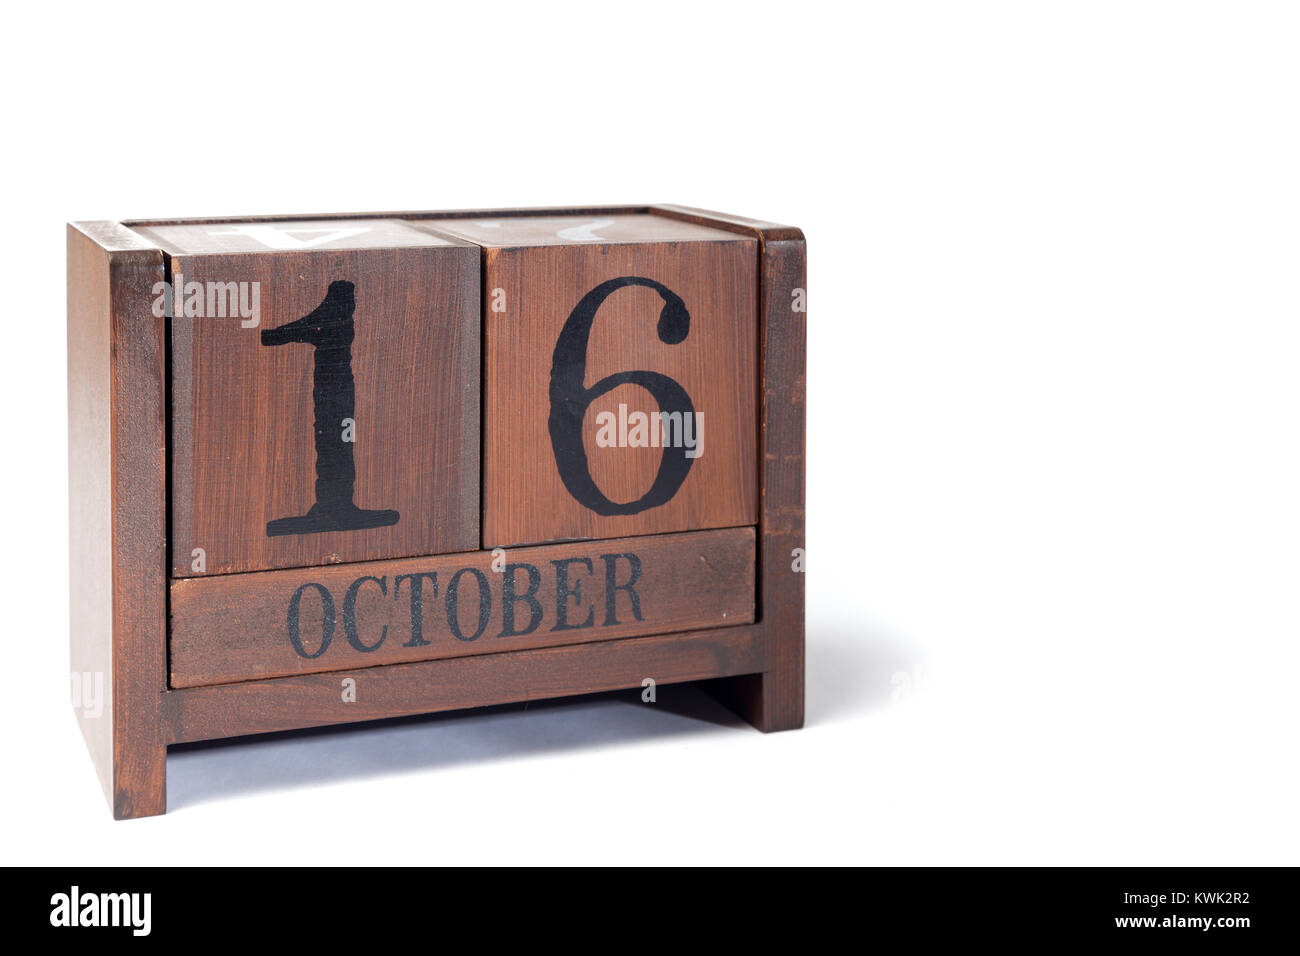 Wooden Perpetual Calendar set to October 16th - Stock Image